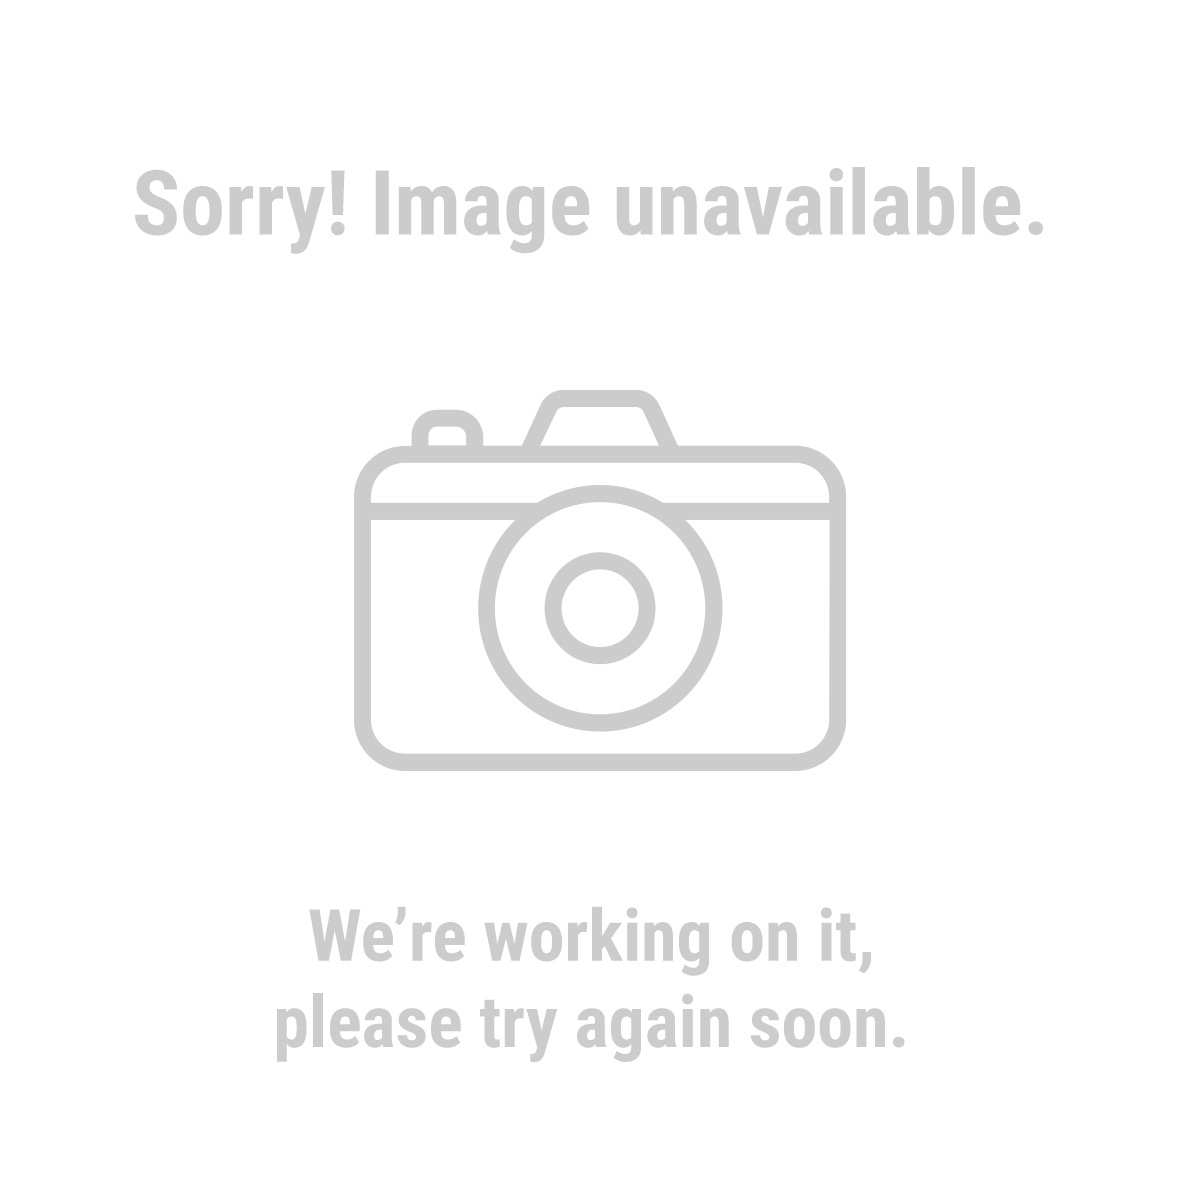 "Chicago Electric Welding 69530 0.030"" ER70S-6 Carbon Steel Welding Wire, 10 Lb. Roll"